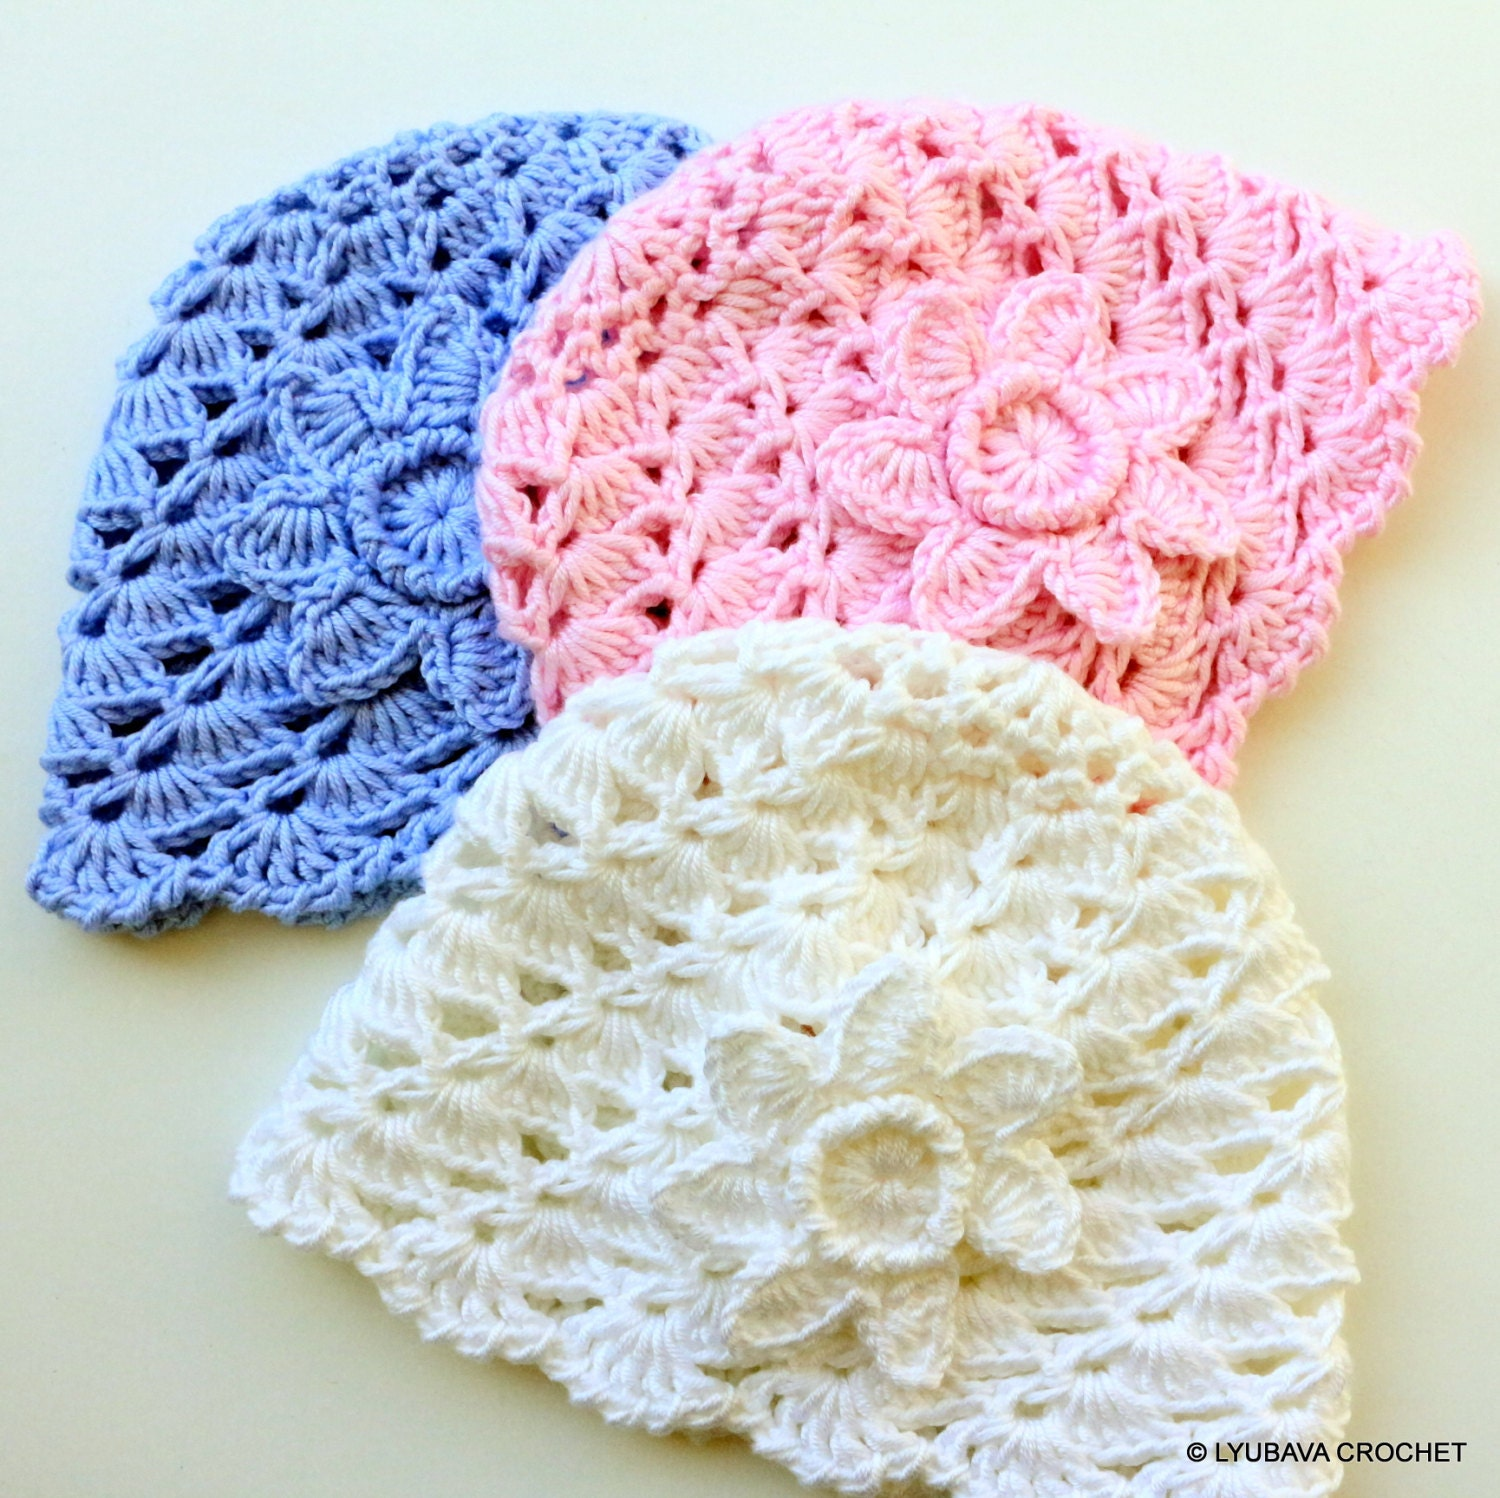 Crochet Patterns Infant Hats : CROCHET PATTERN Baby Hat Crochet Flower Hat Diy by LyubavaCrochet